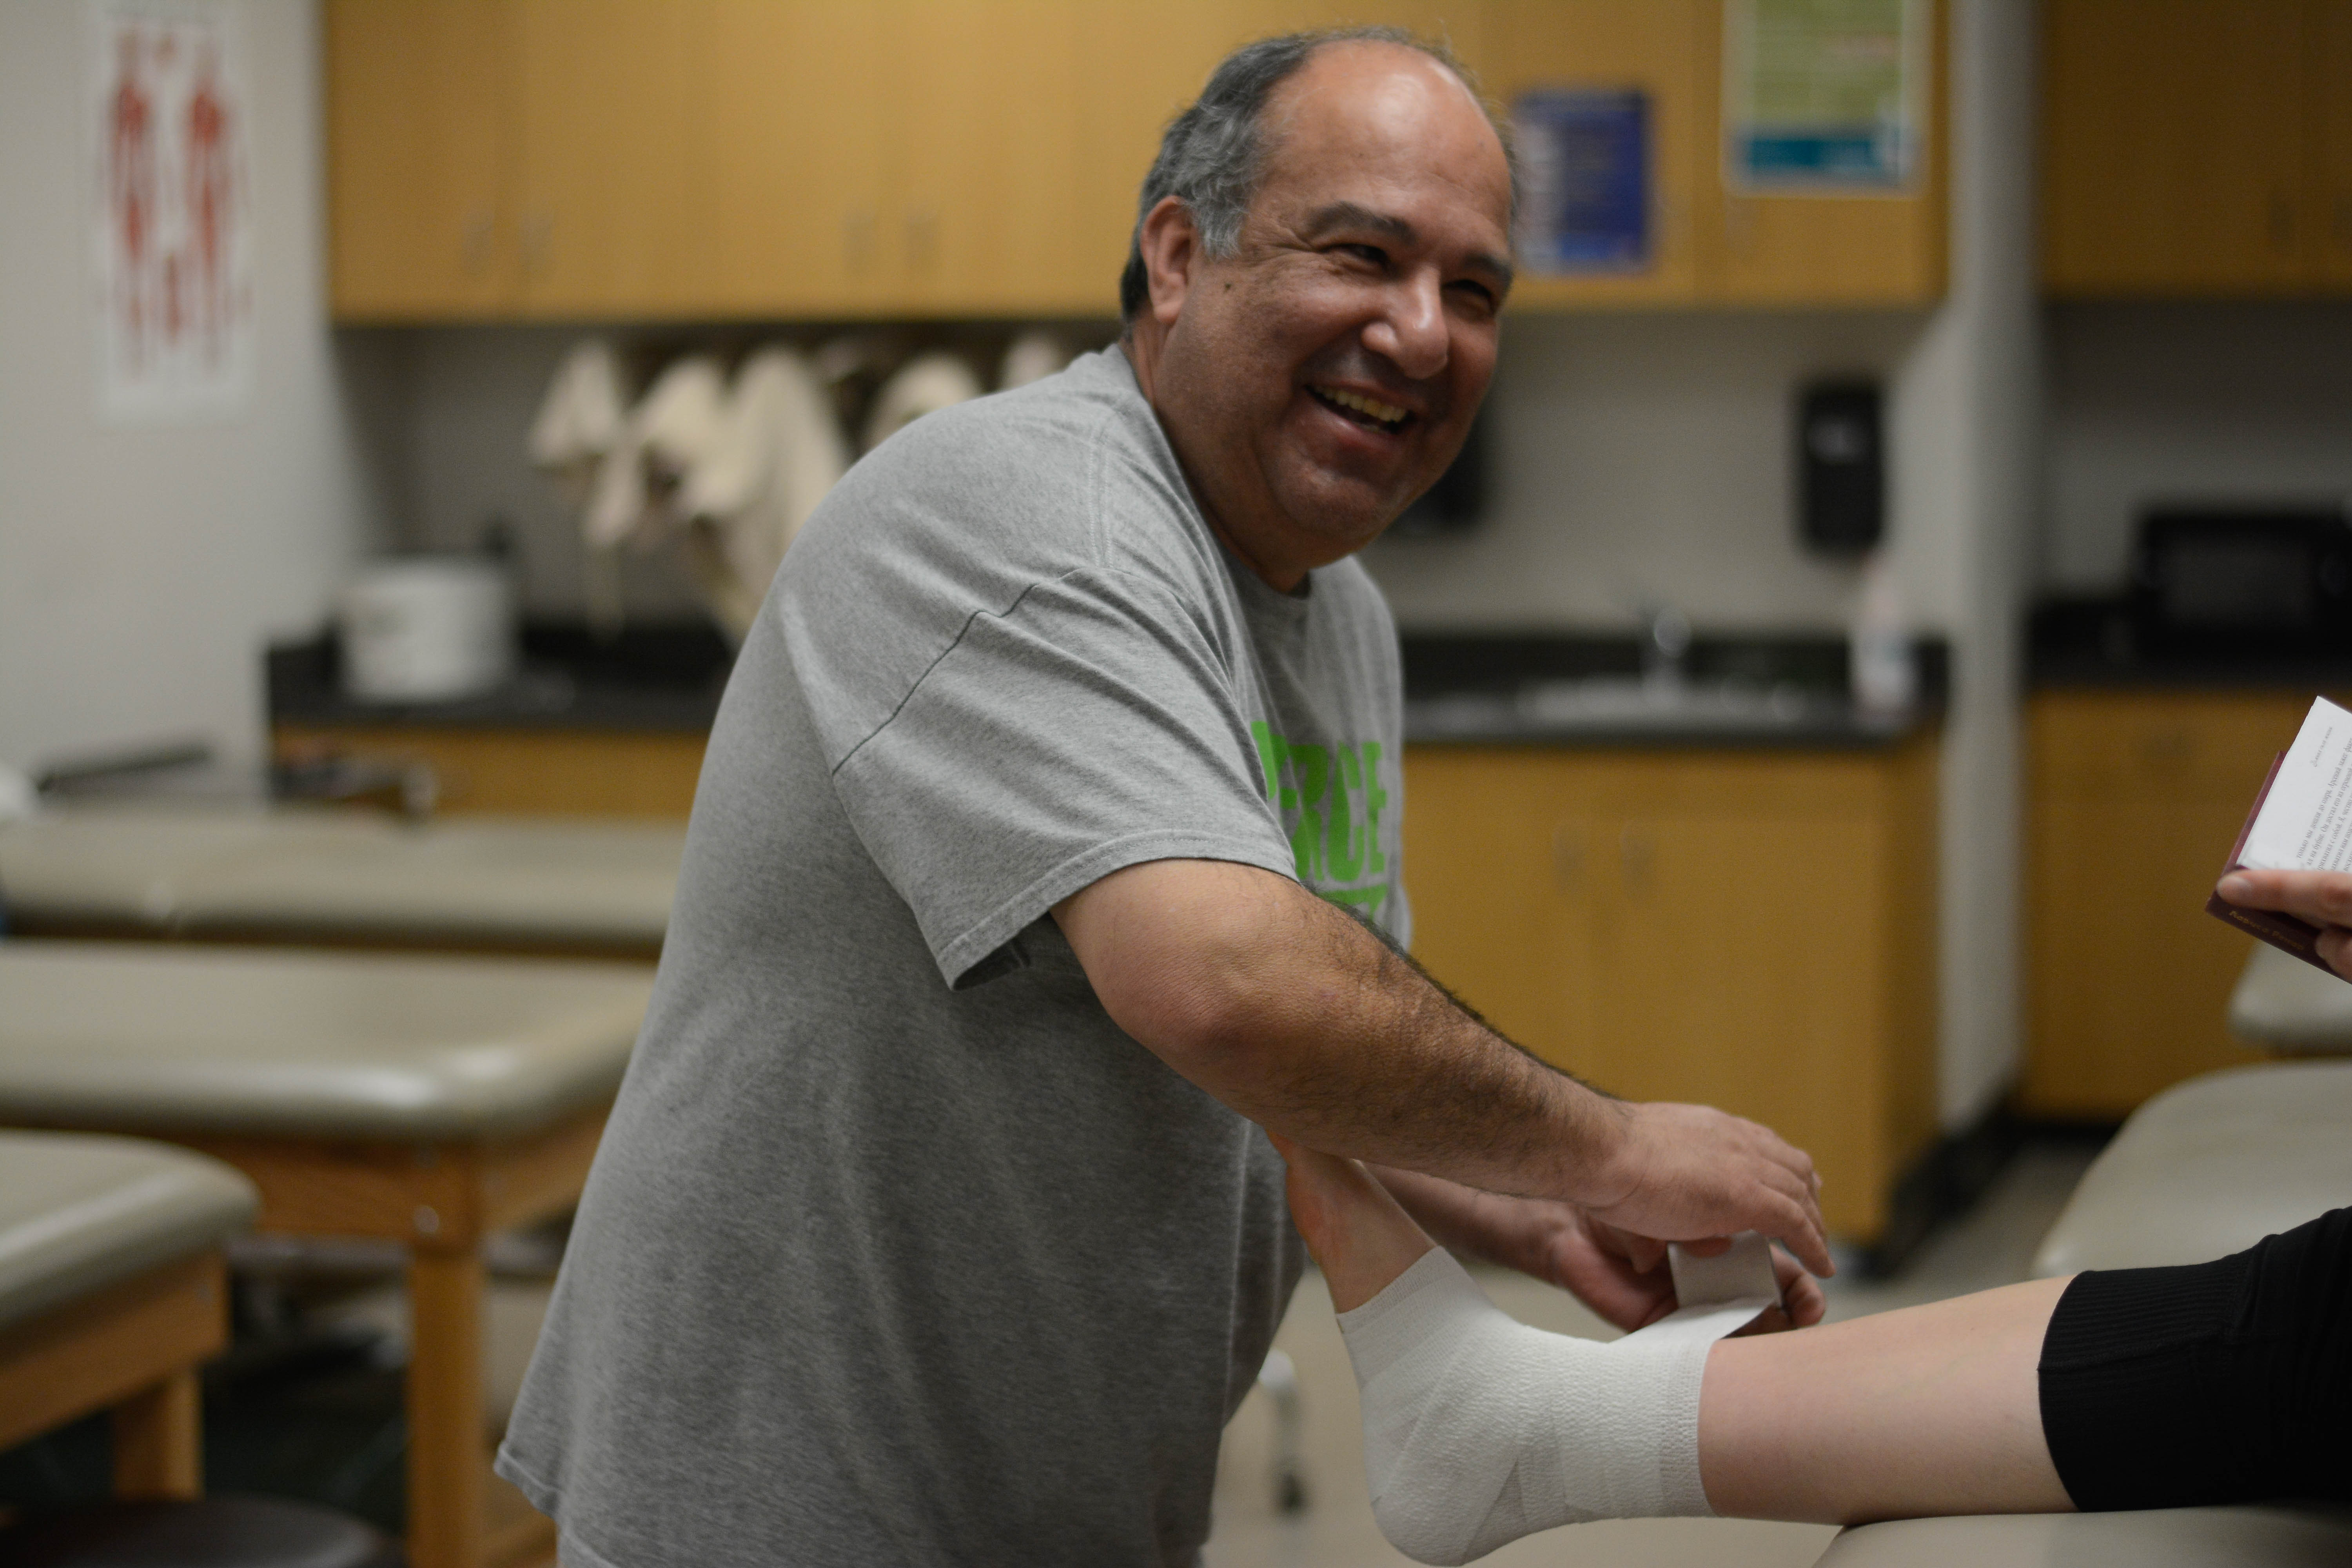 Healing hands mend wounded athletes